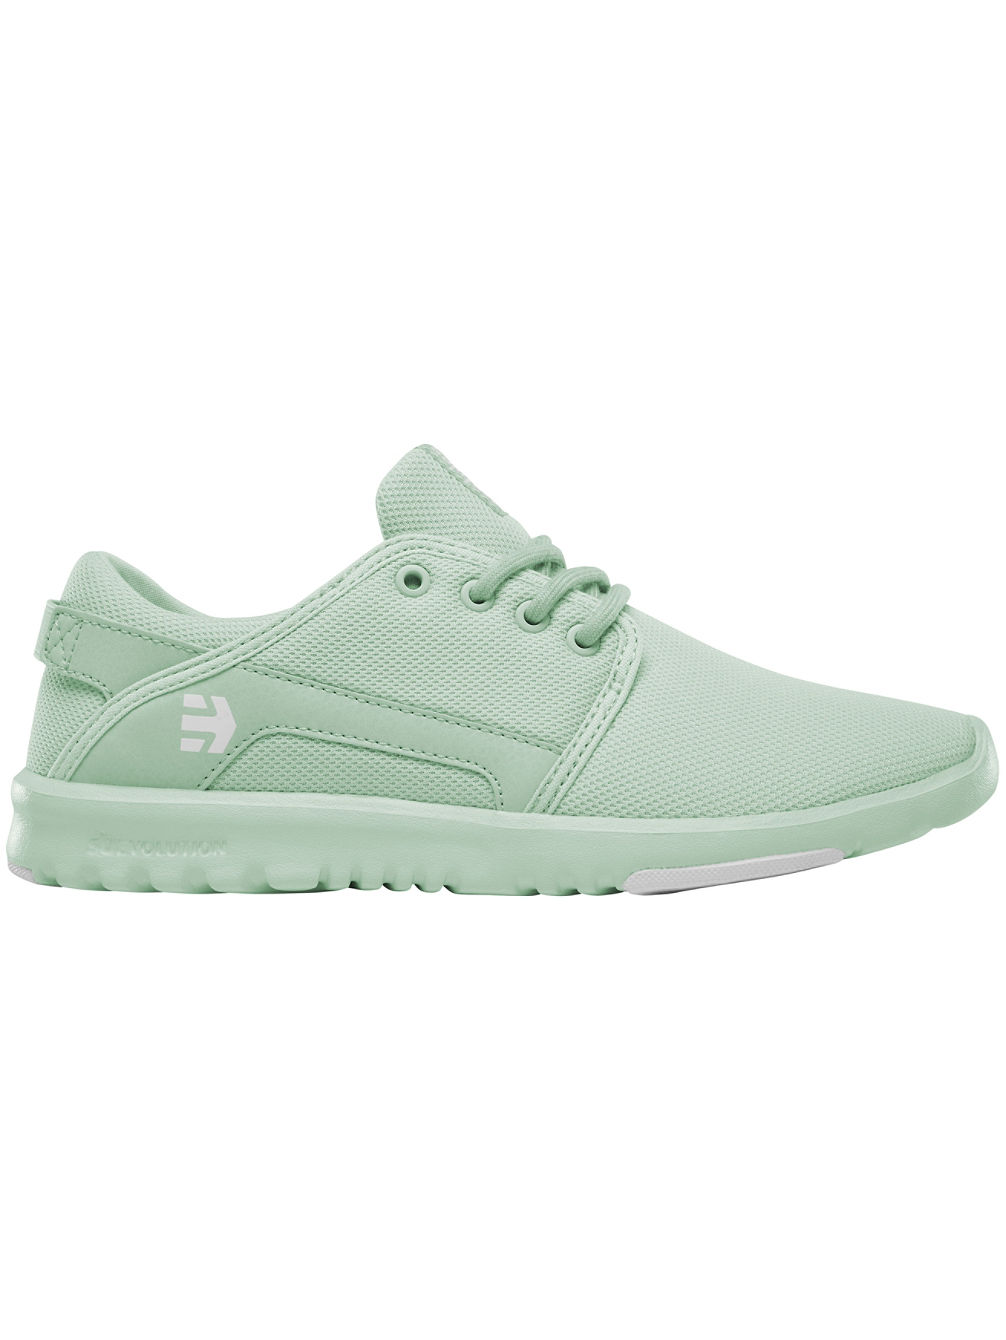 dd64743b4f Buy Etnies Scout Sneakers online at Blue Tomato